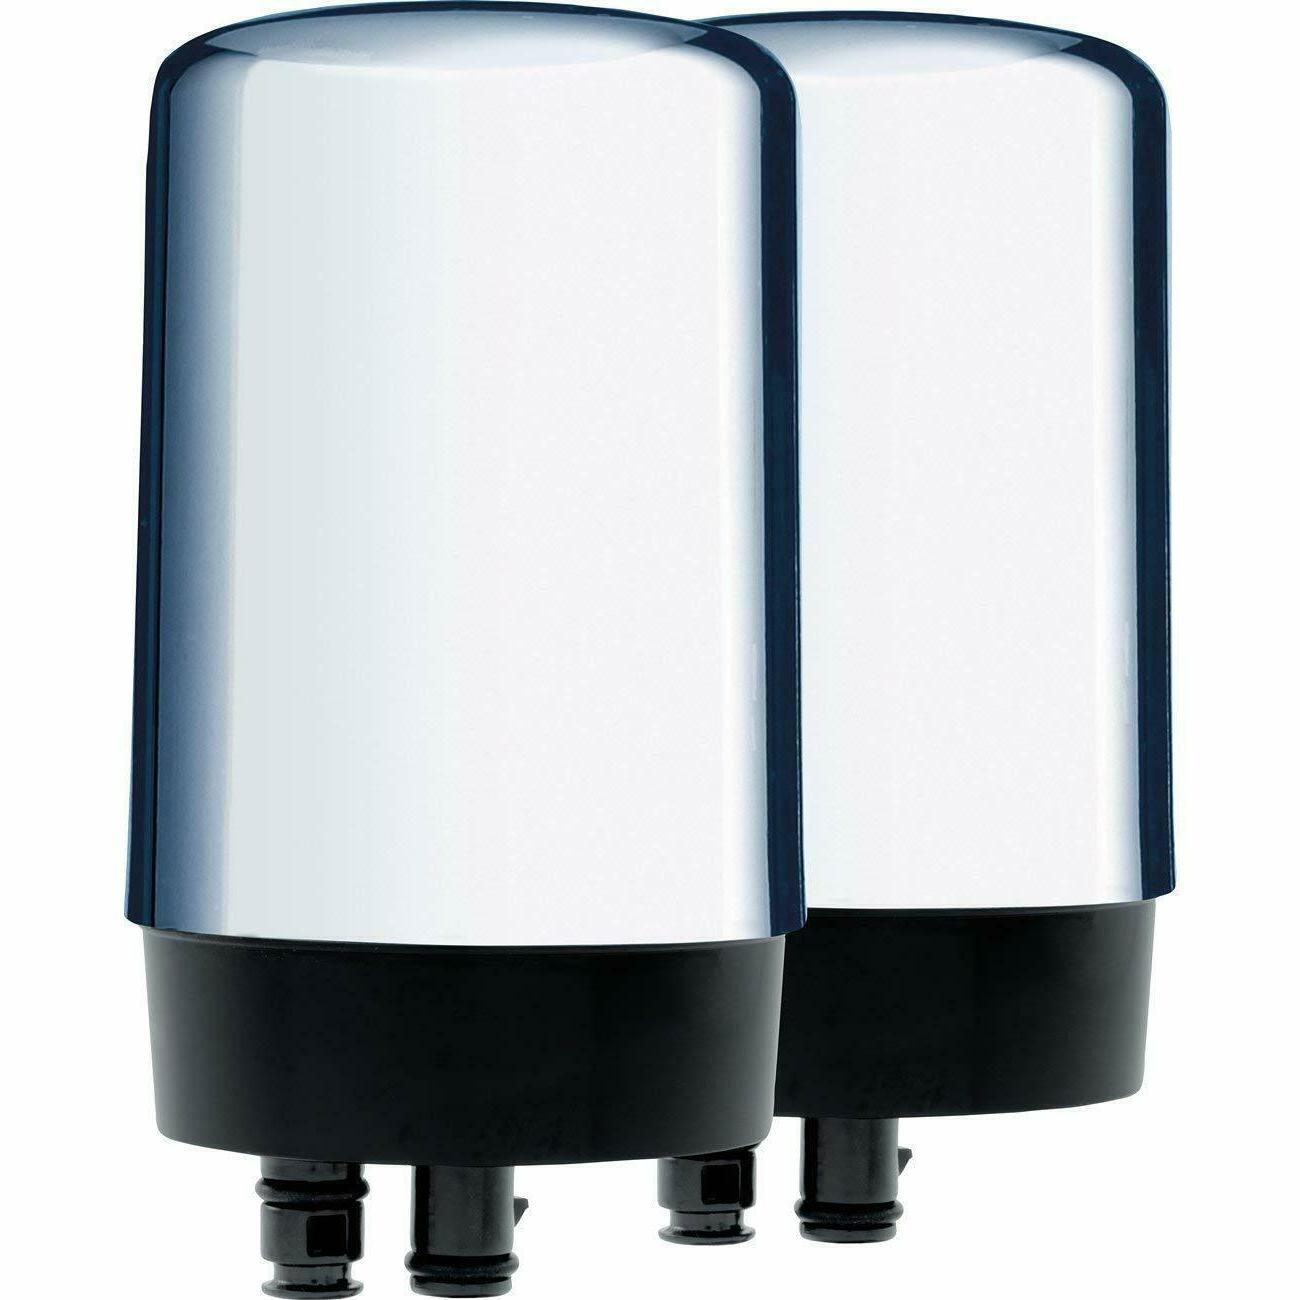 Tap Water Filter, Water Filtration System Replacement Filter